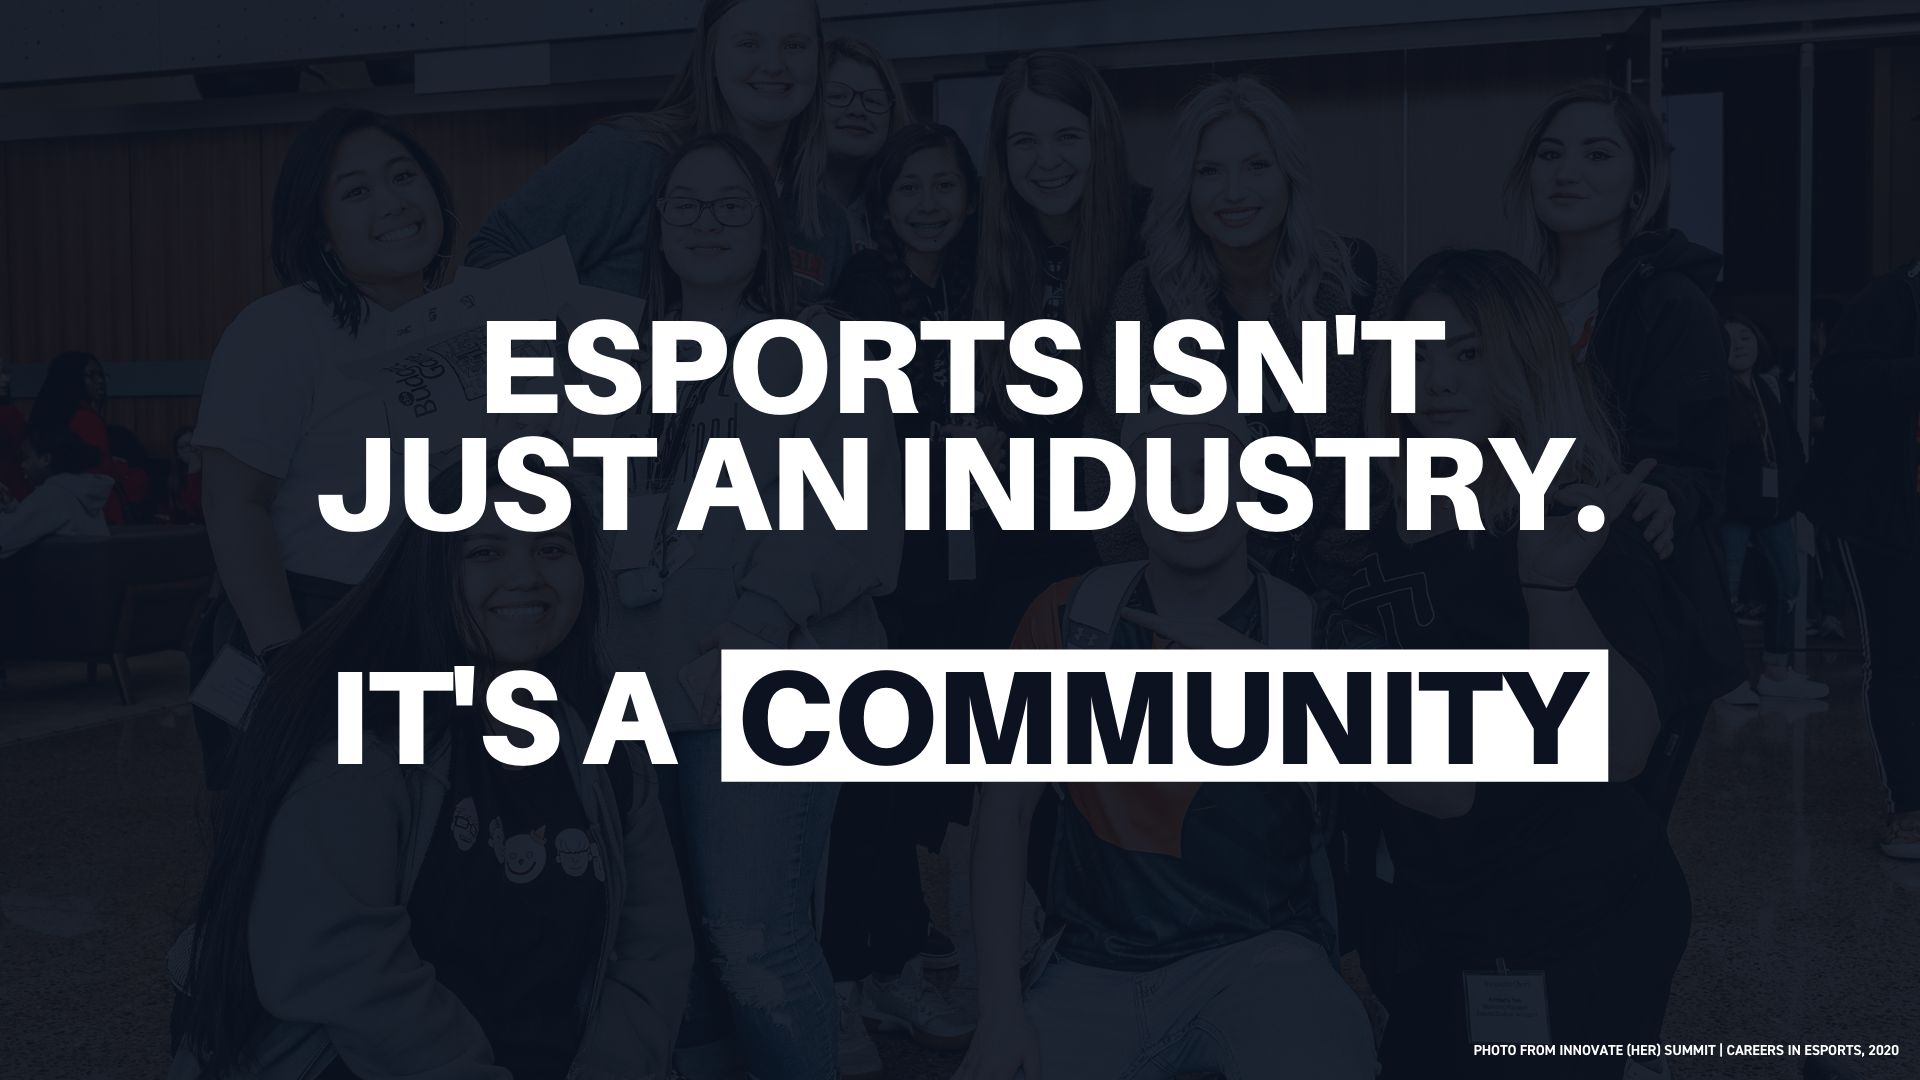 Esports Isn't Just an Industry, It's a Community